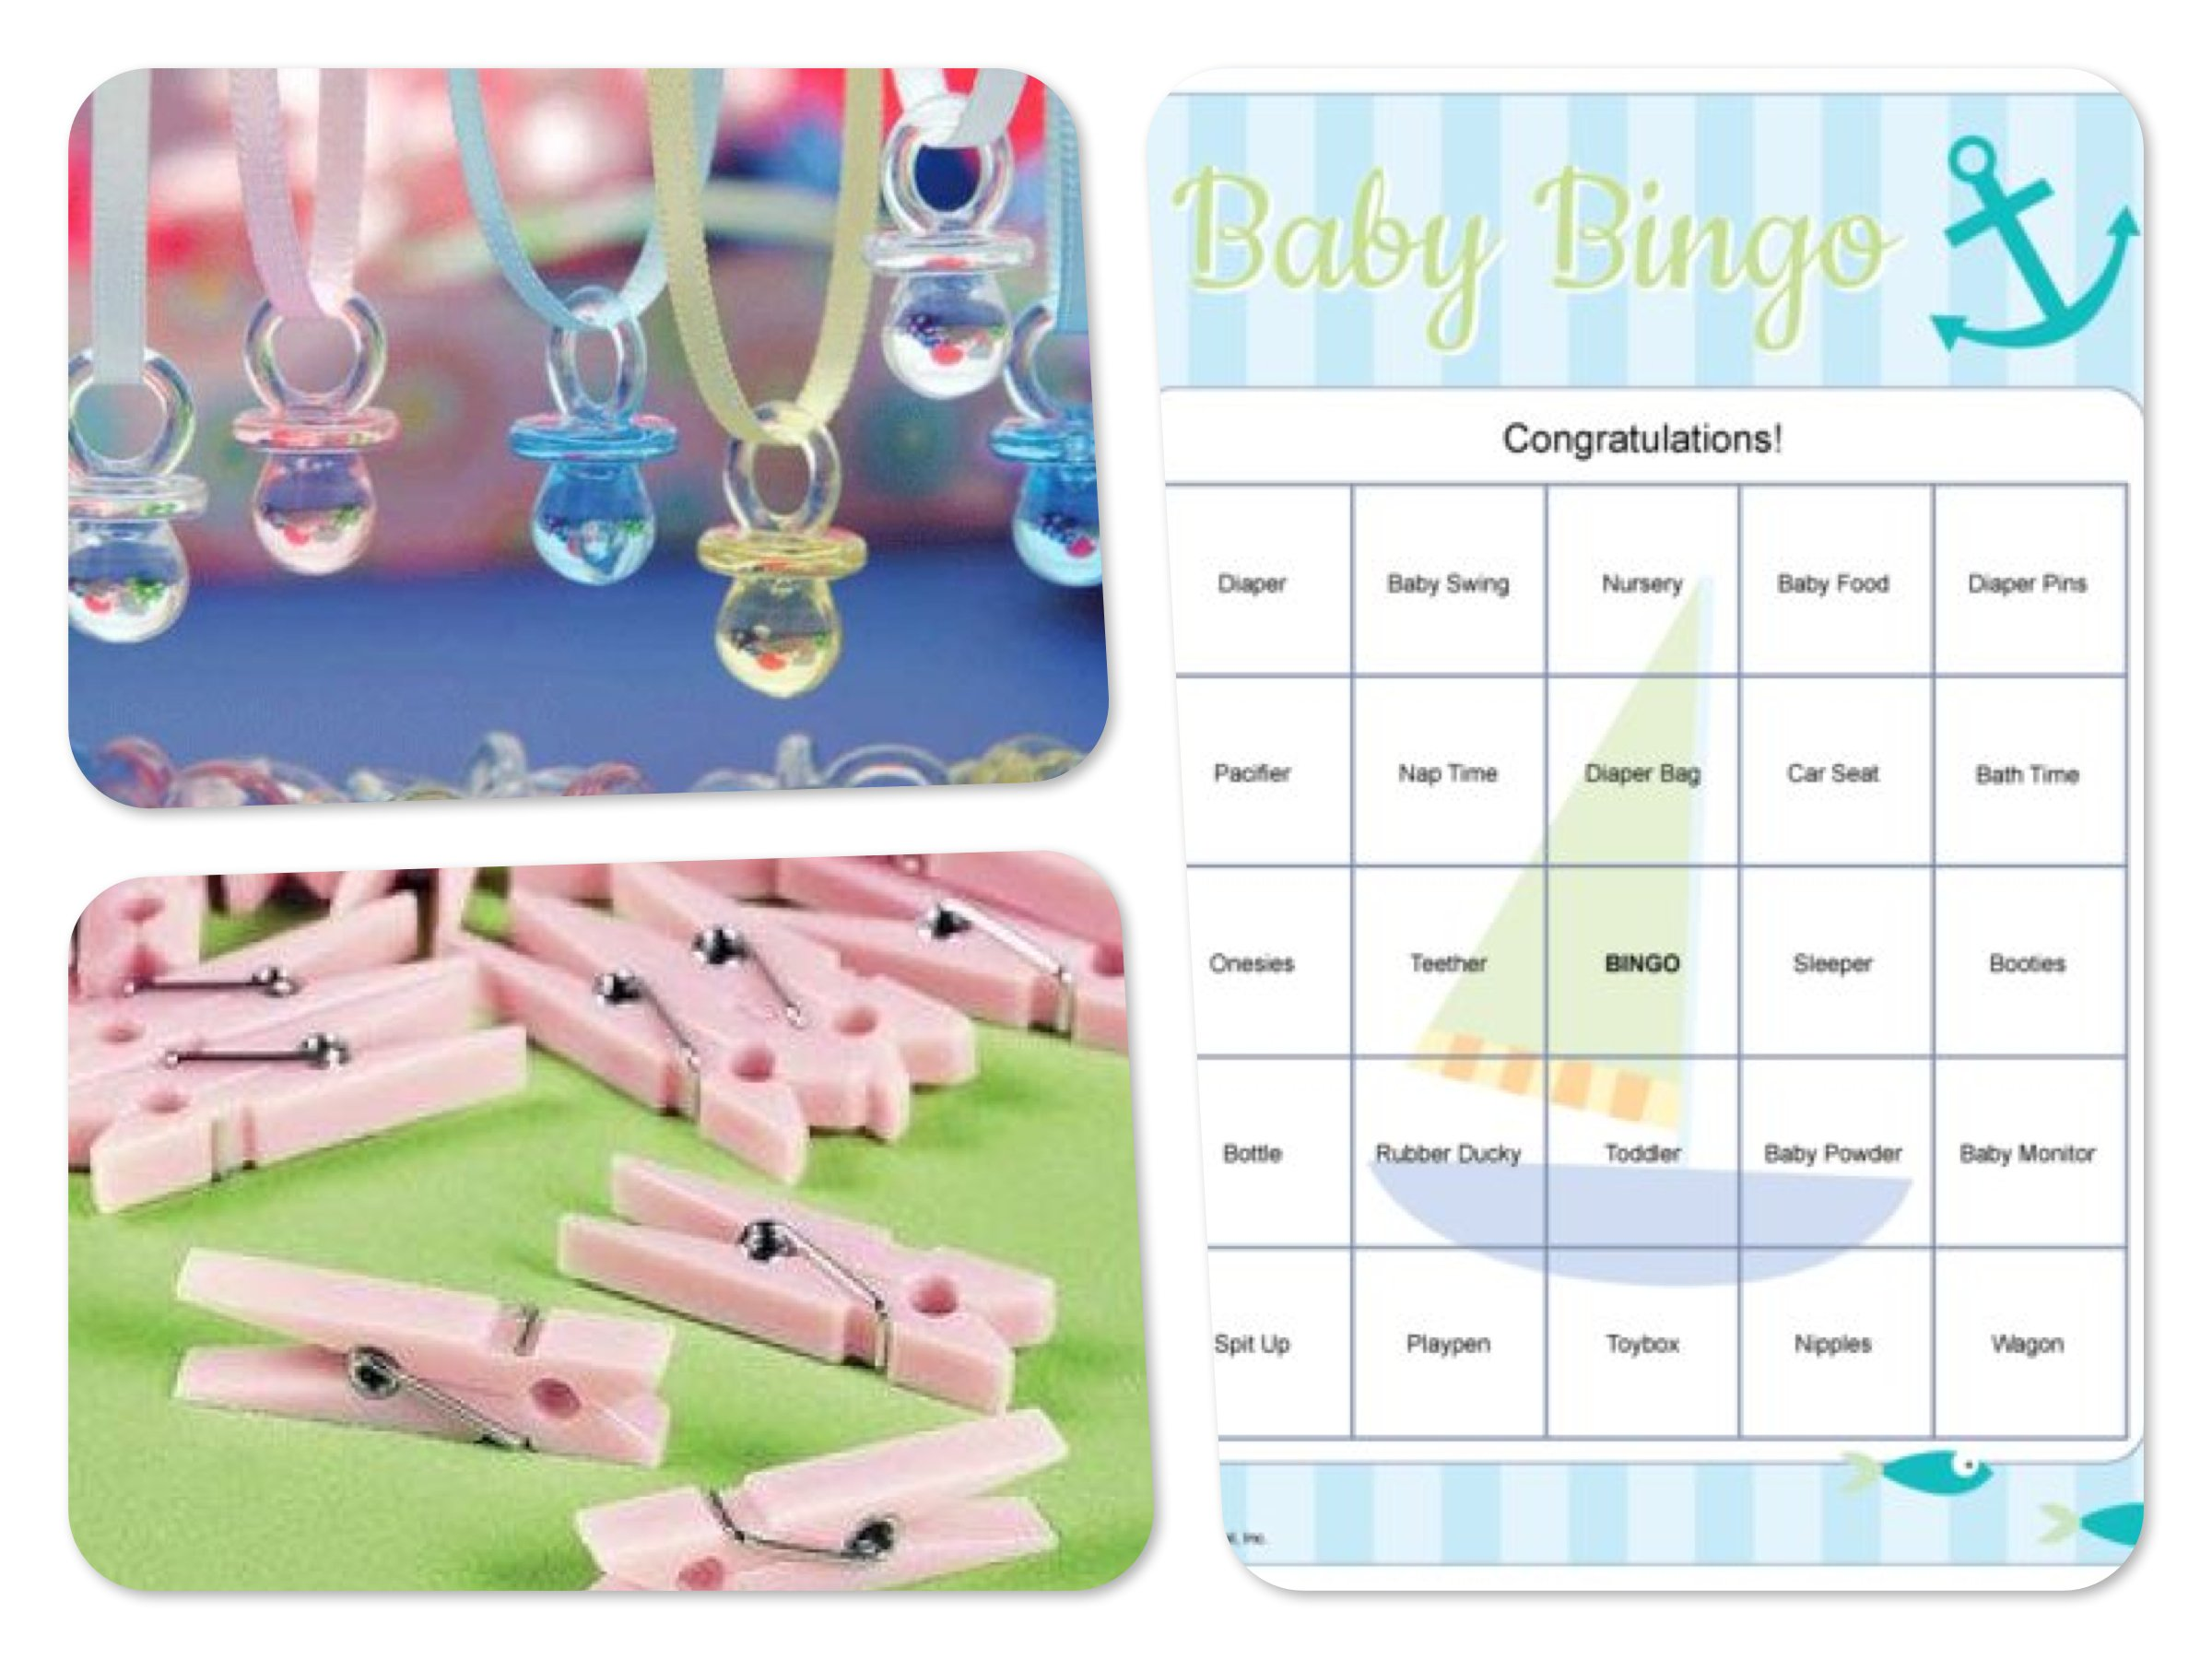 gift ideas for baby shower games pictures to pin on pinterest